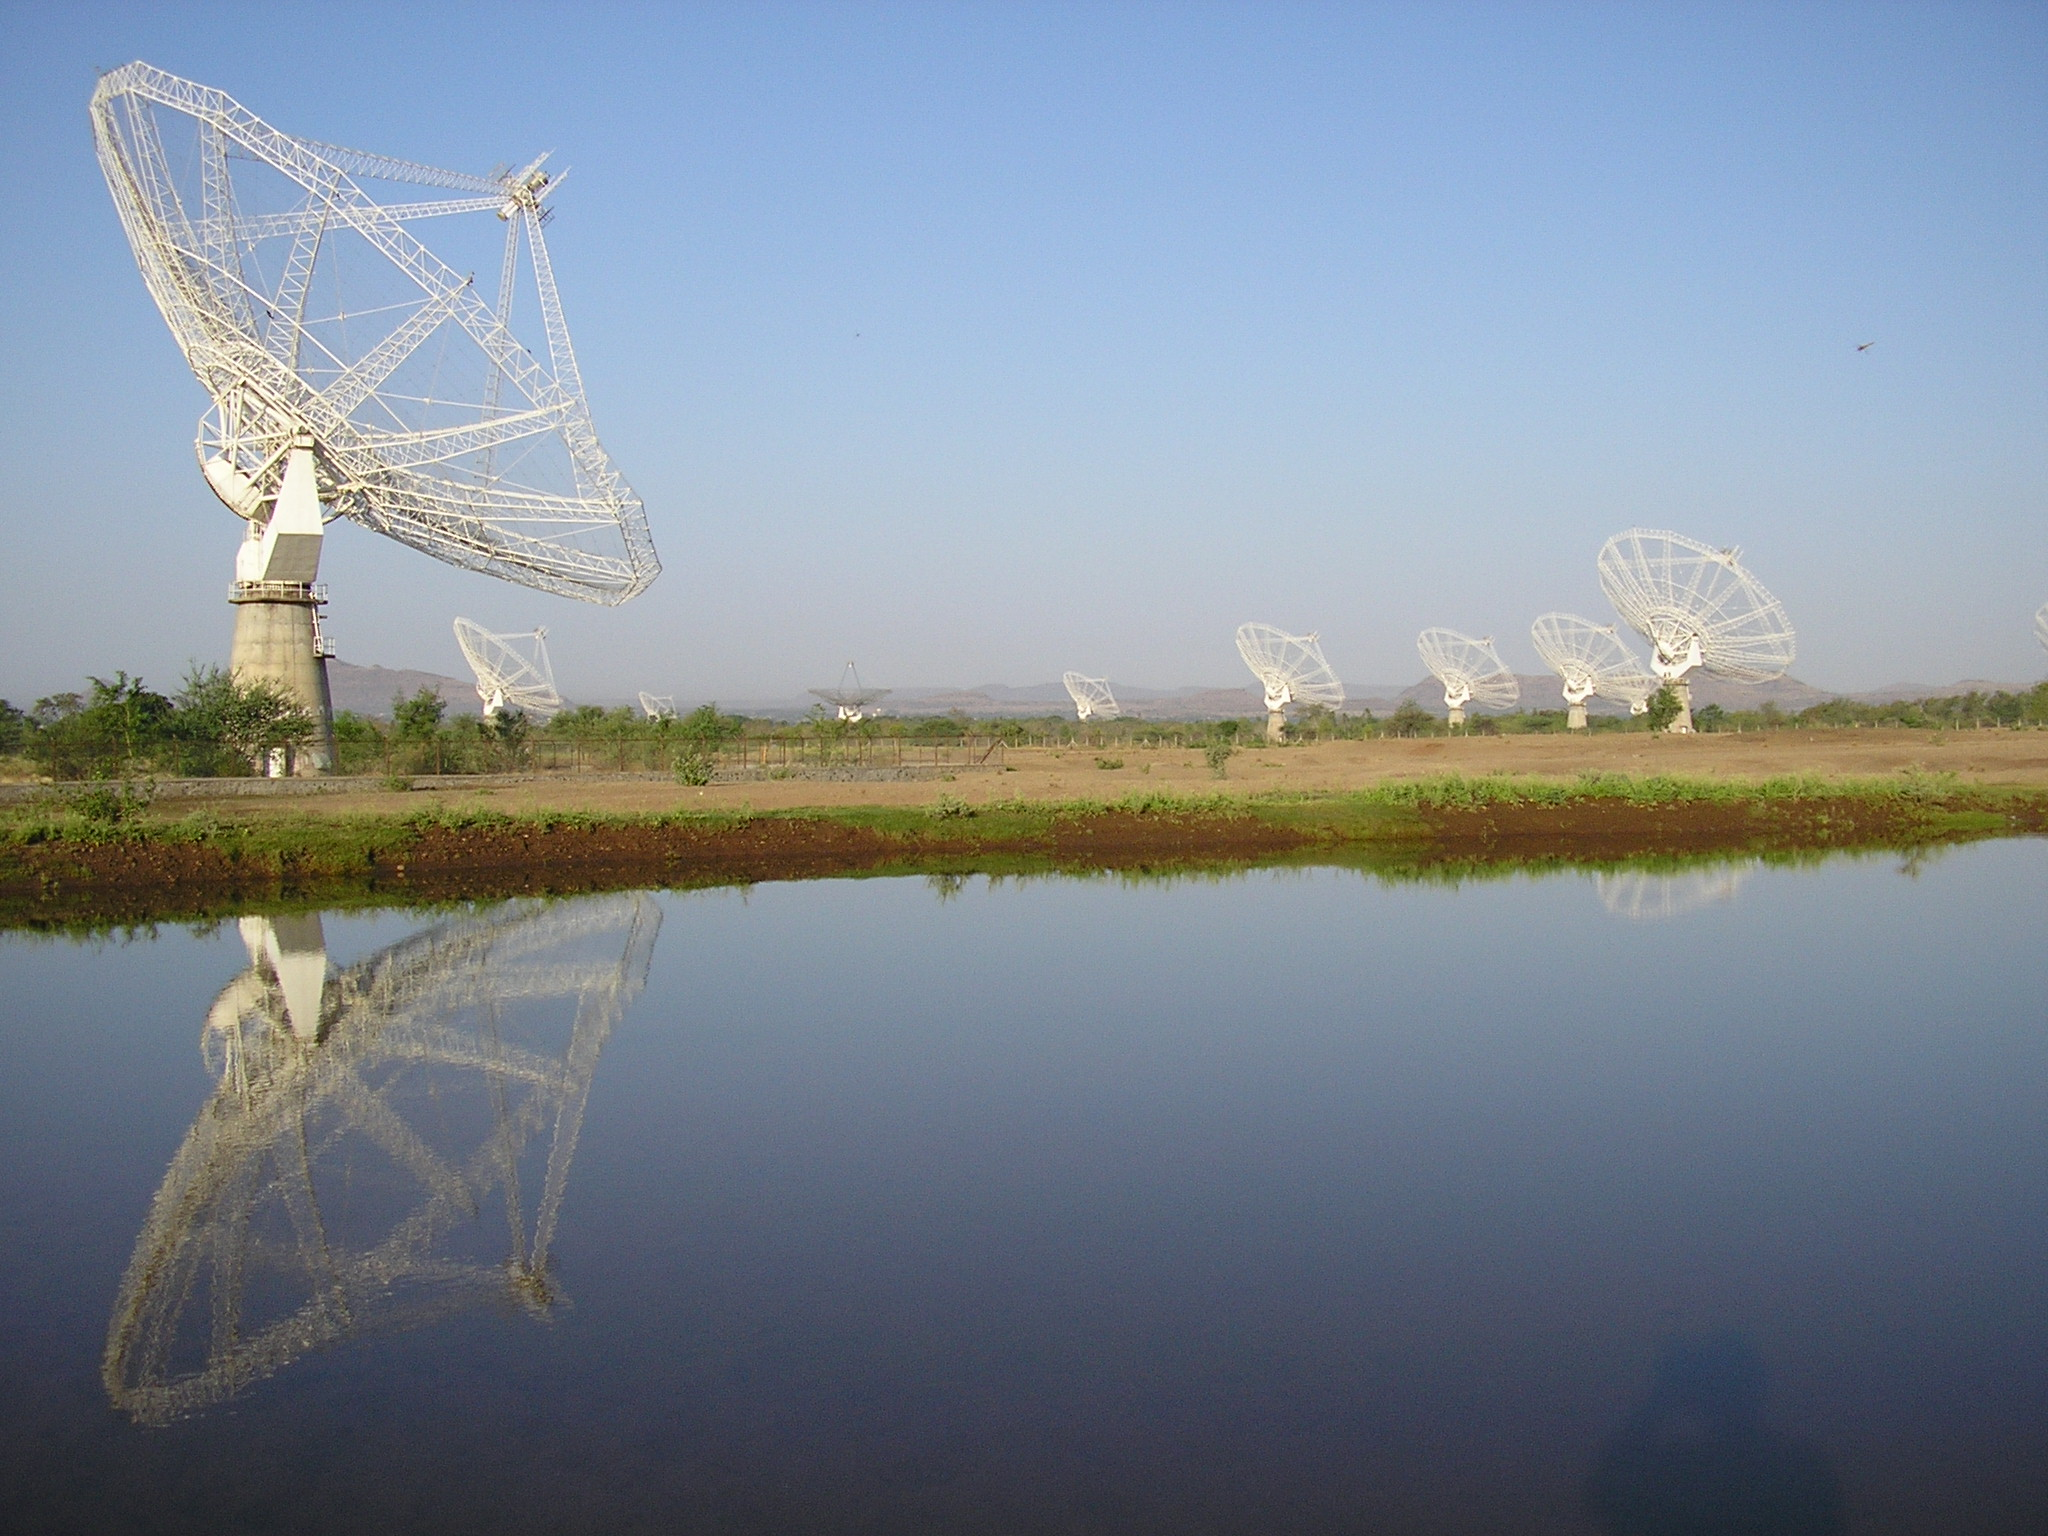 The GMRT (Giant Metre-wave Radio Telescope), NCRA. Credit: National Centre for Radio Astrophysics/Tata Institute of Fundamental Research